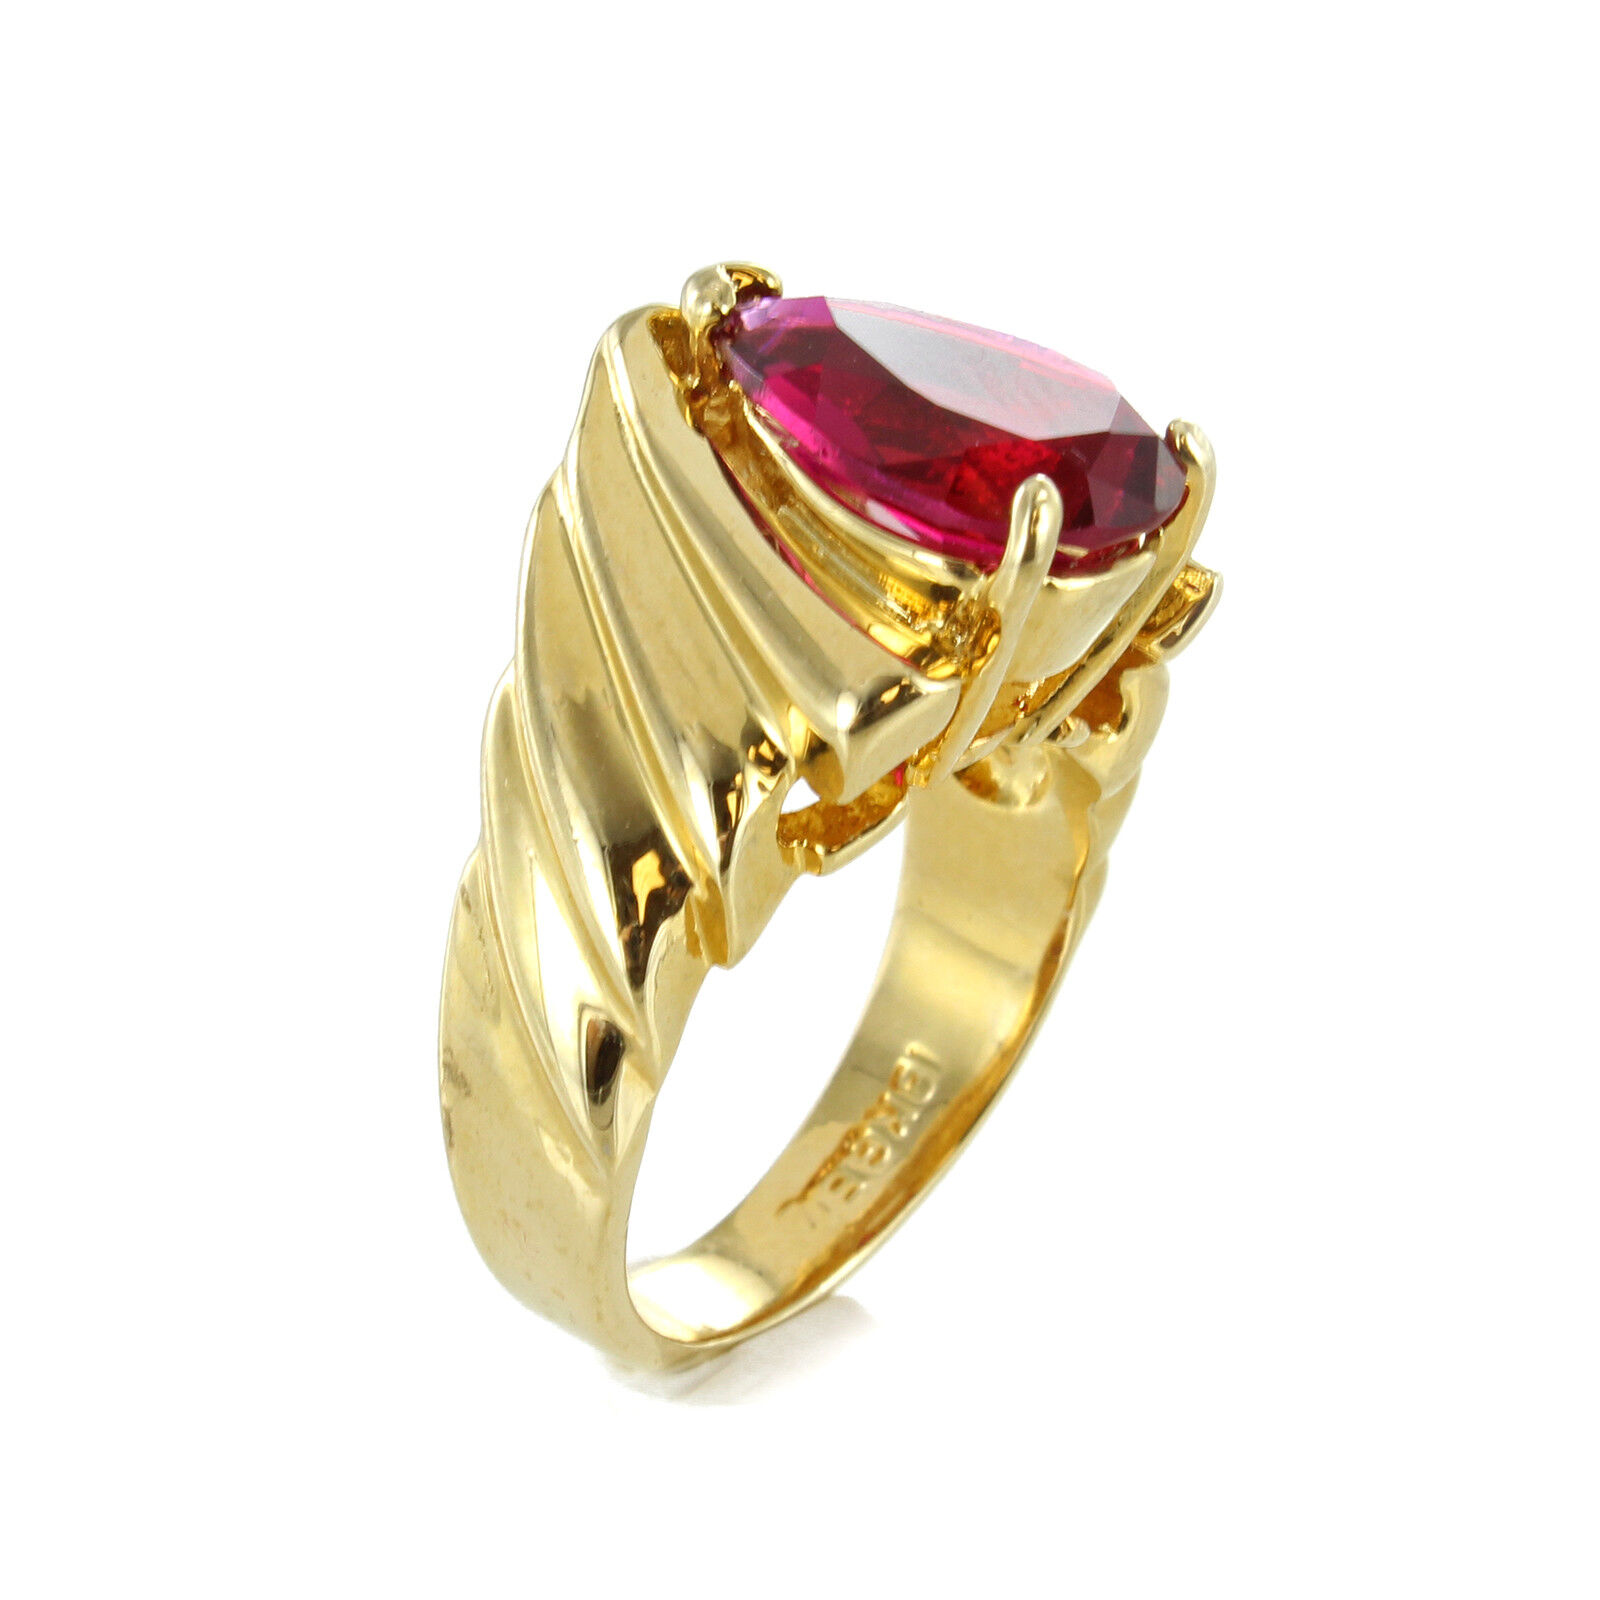 18k gold Electroplated with Simulated Ruby and Cubic Zirconia Ring Size 6